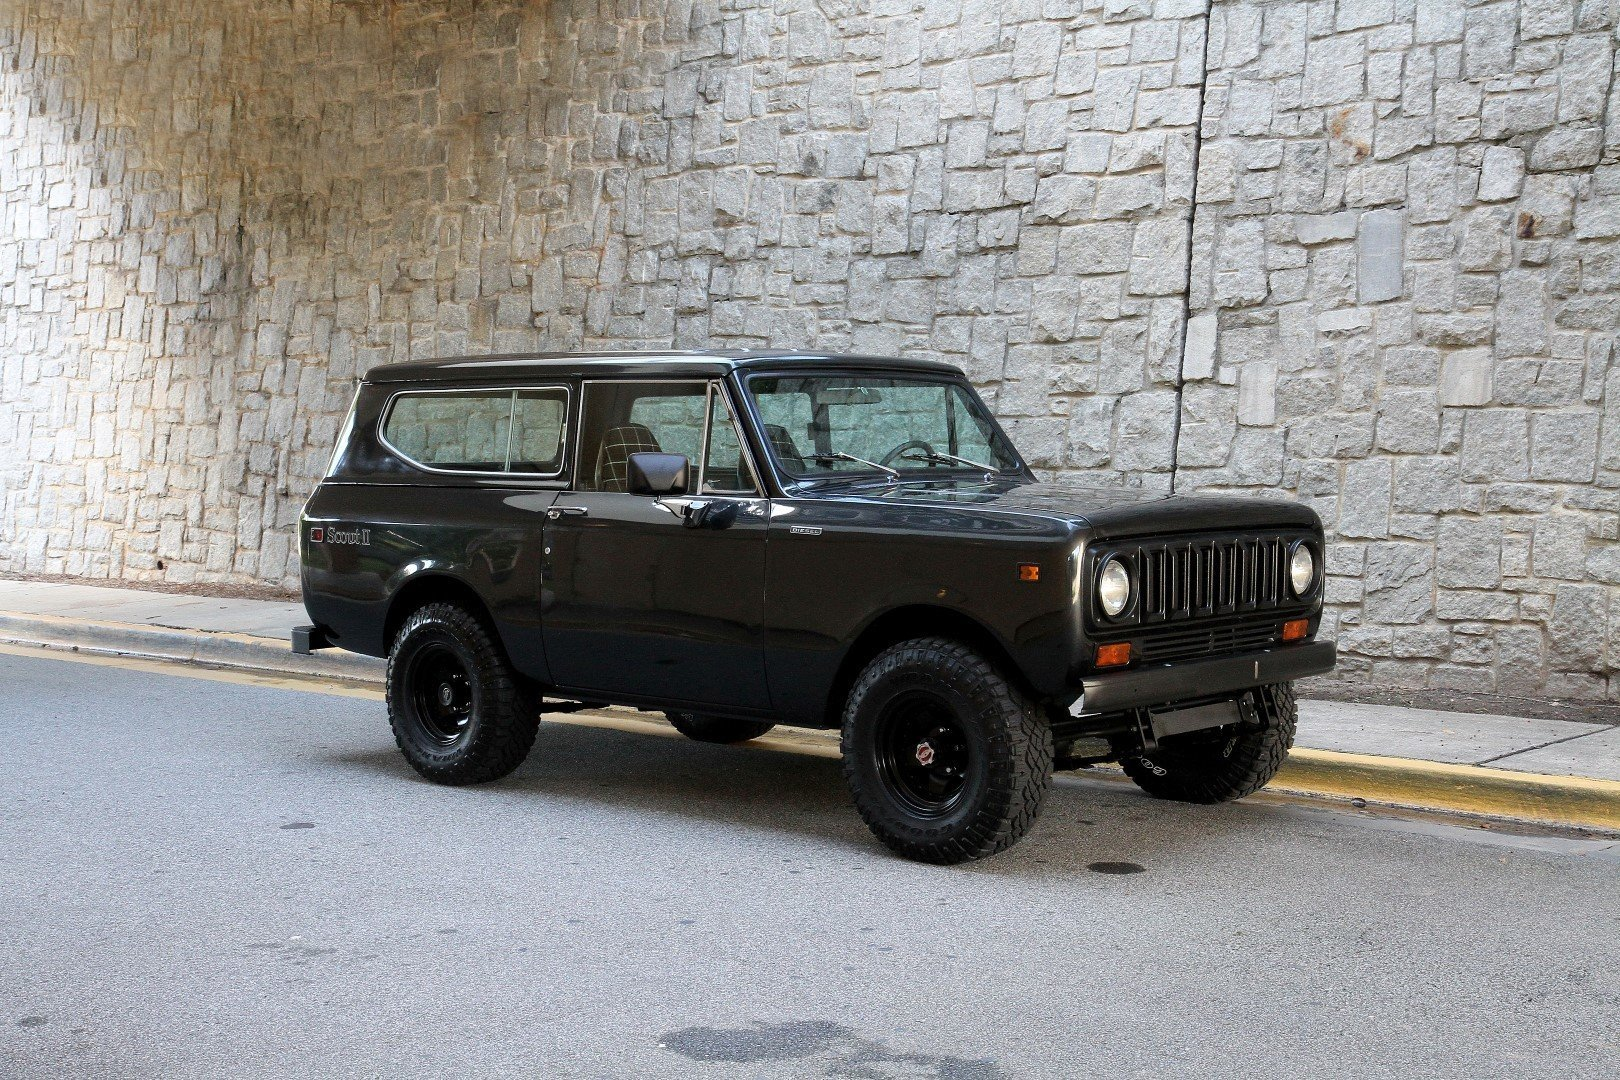 196244 hd 1980 international scout ii diesel